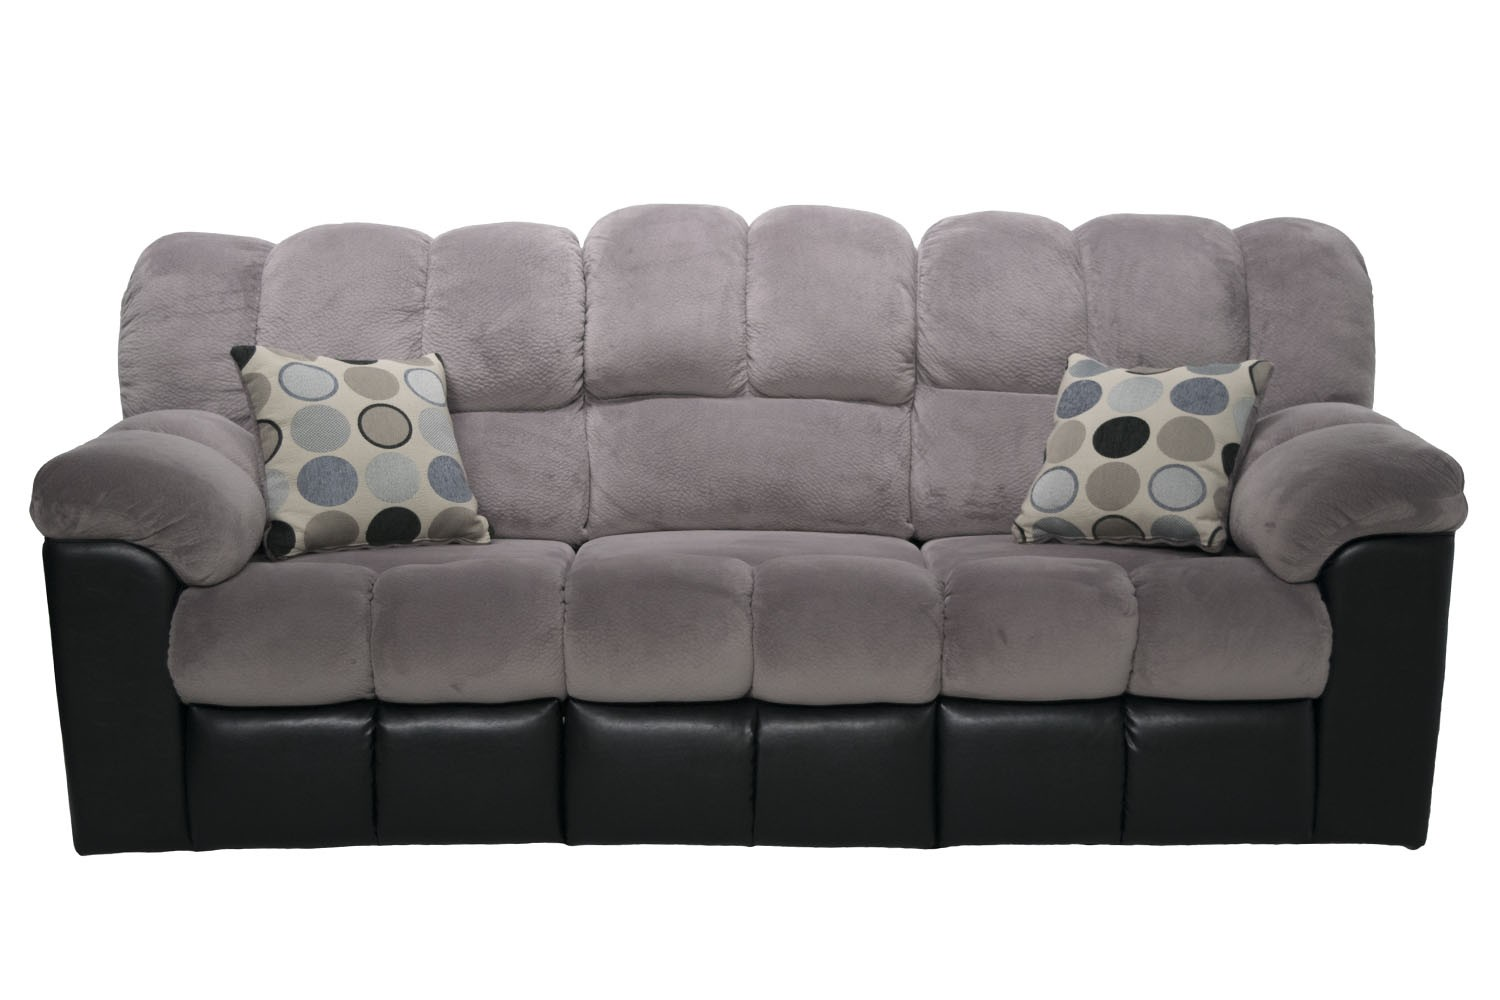 Charmant Fountain Gray Reclining Sofa Media Image 1 ...